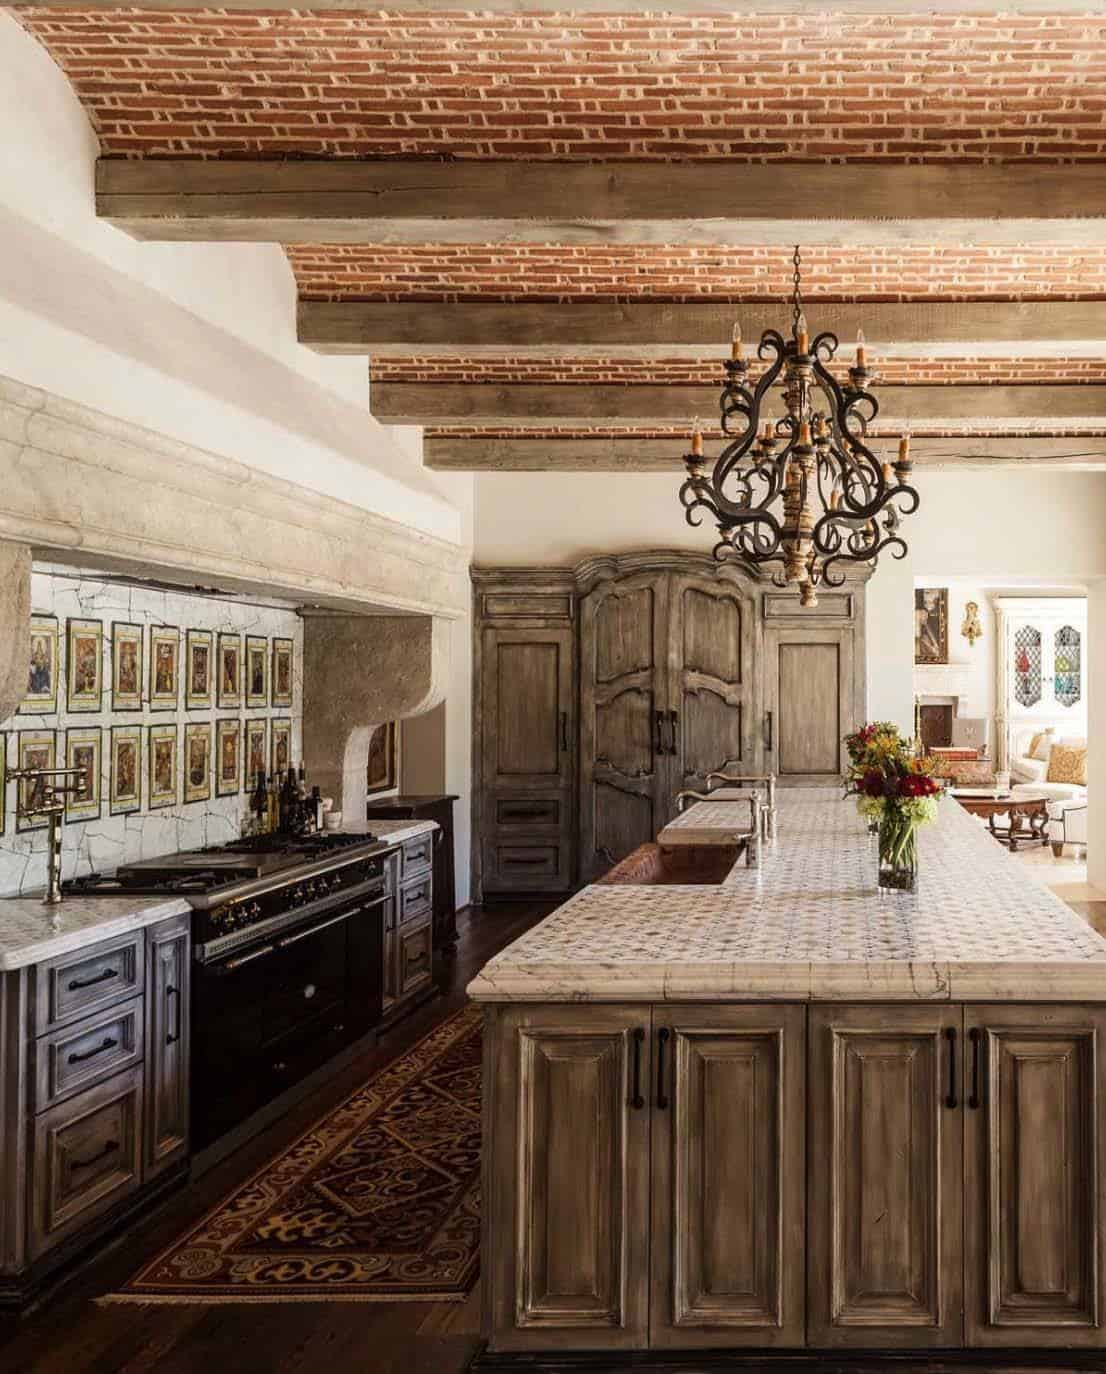 Mediterranean House Design Ideas 11 Most Charming Ones In: Mediterranean Style Home Infused With Elegance In Dallas